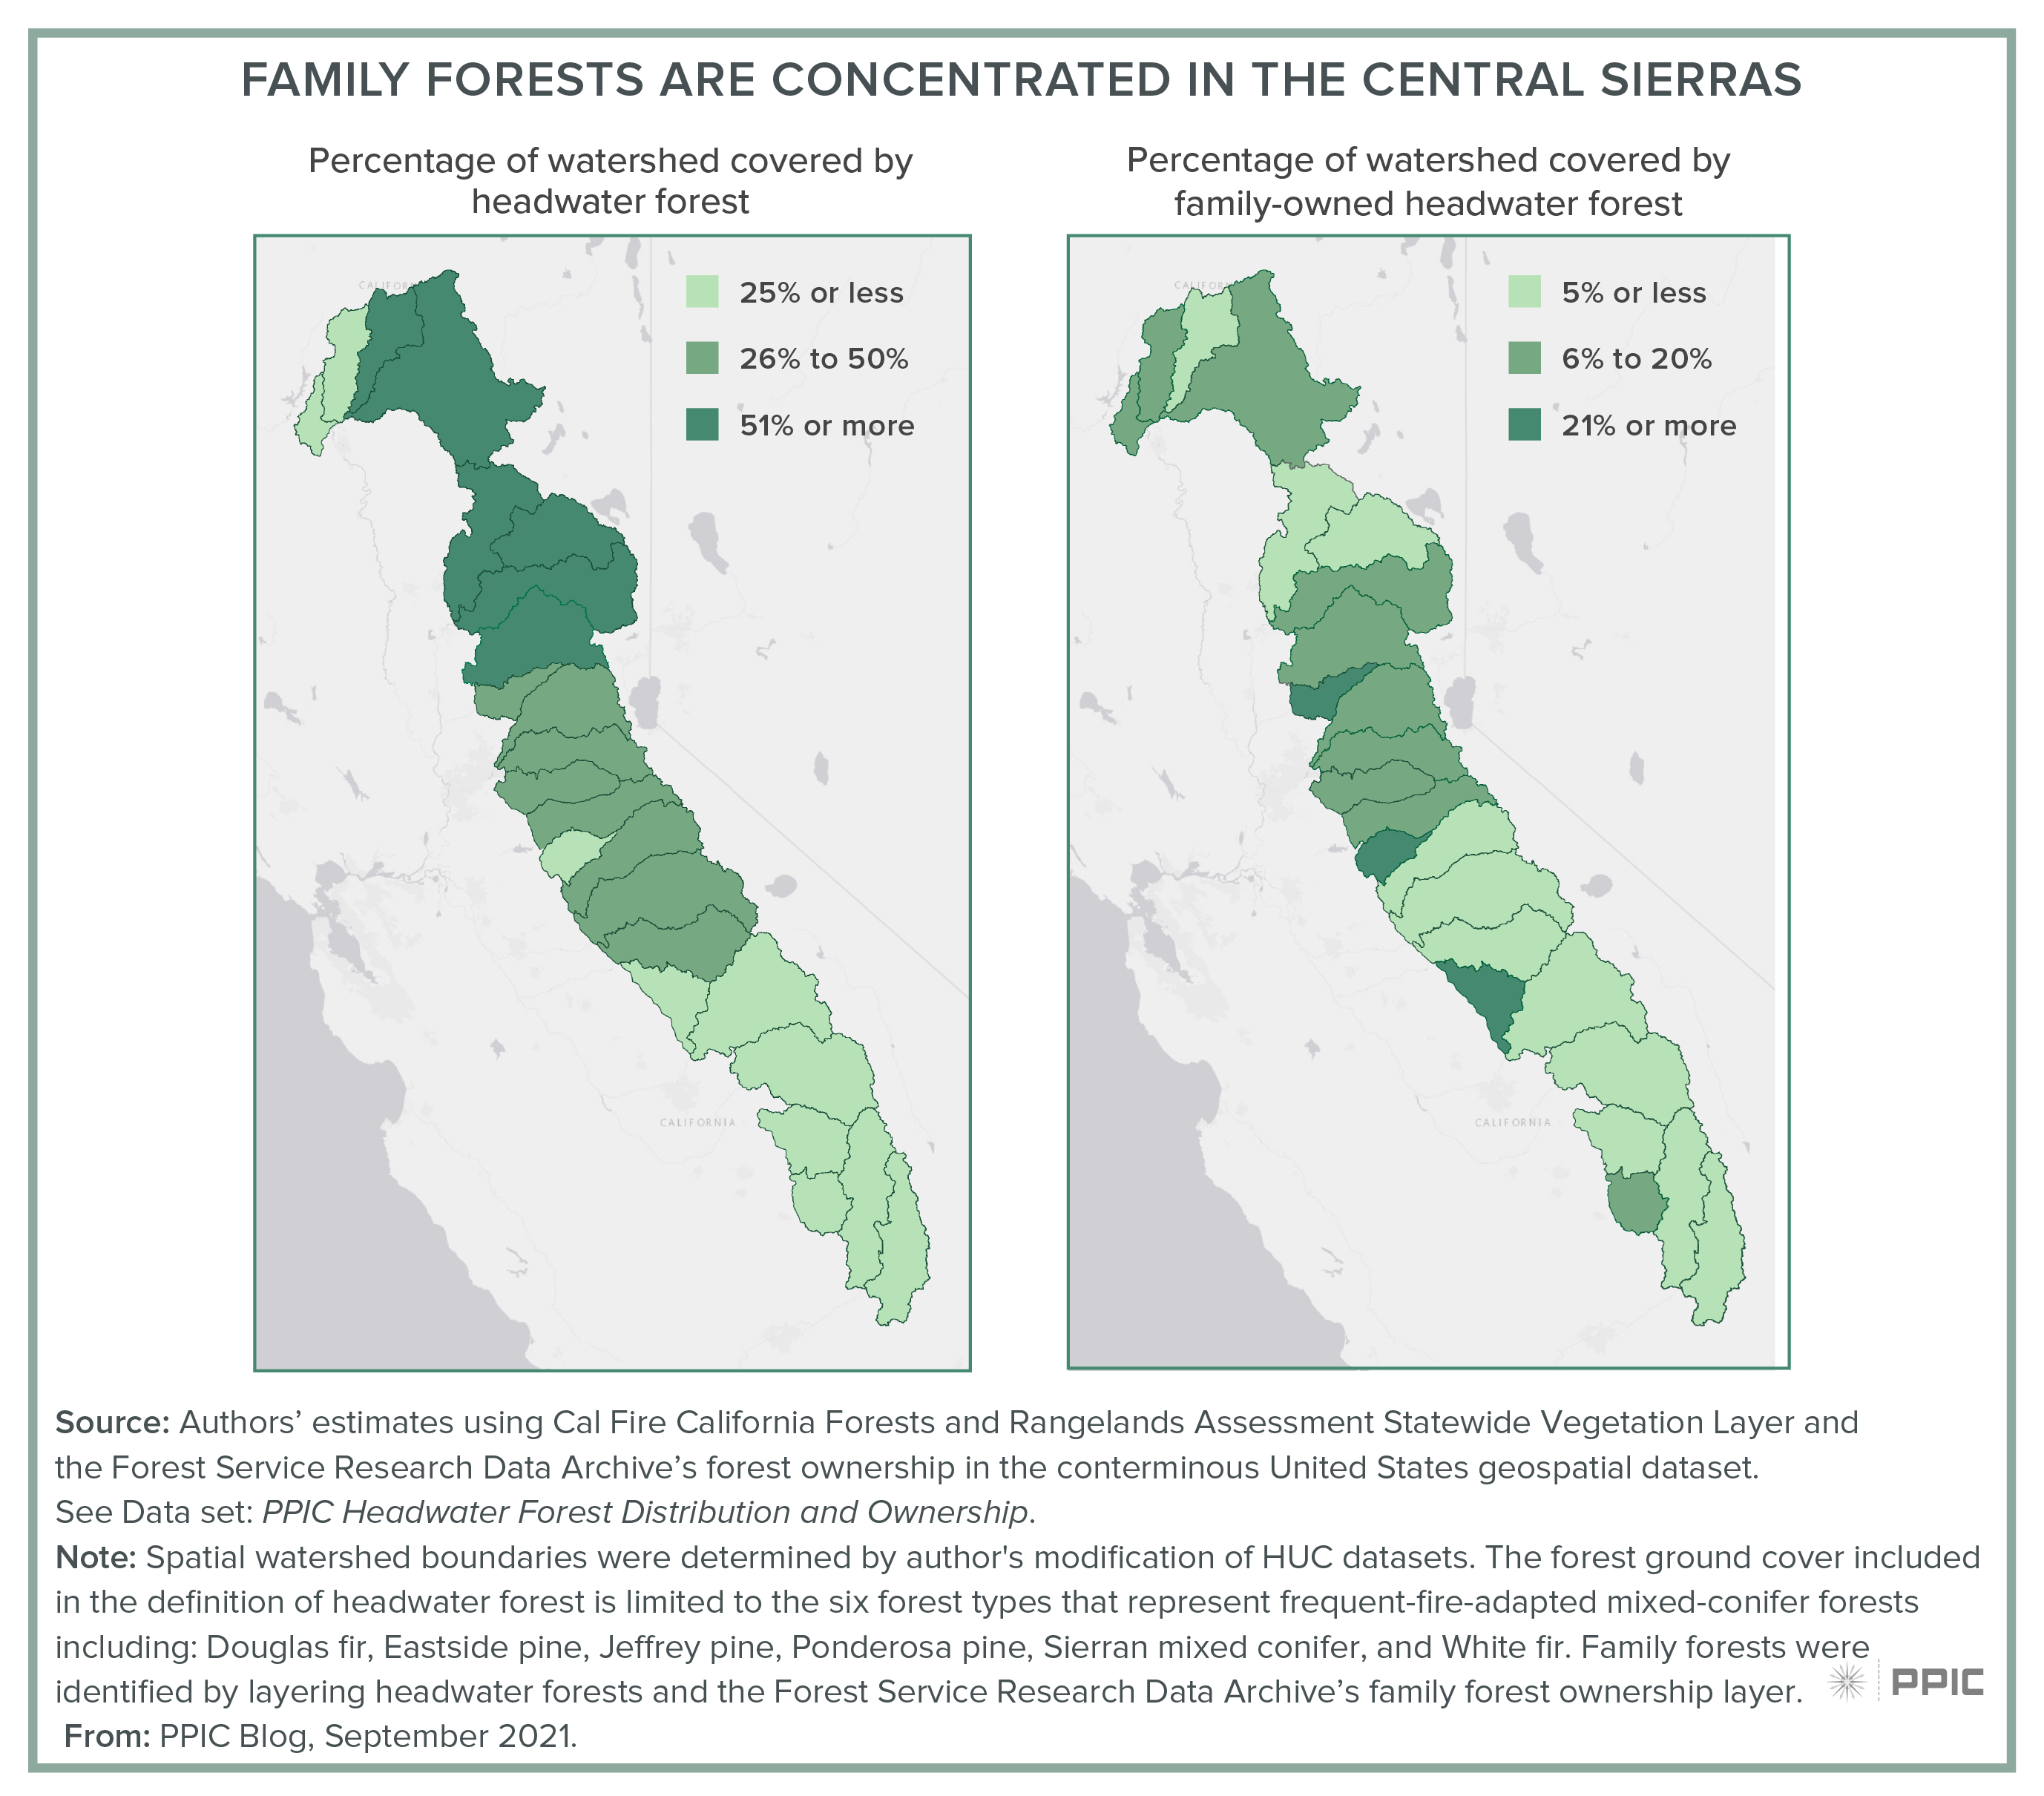 figure - Family Forests Are Concentrated in the Central Sierras